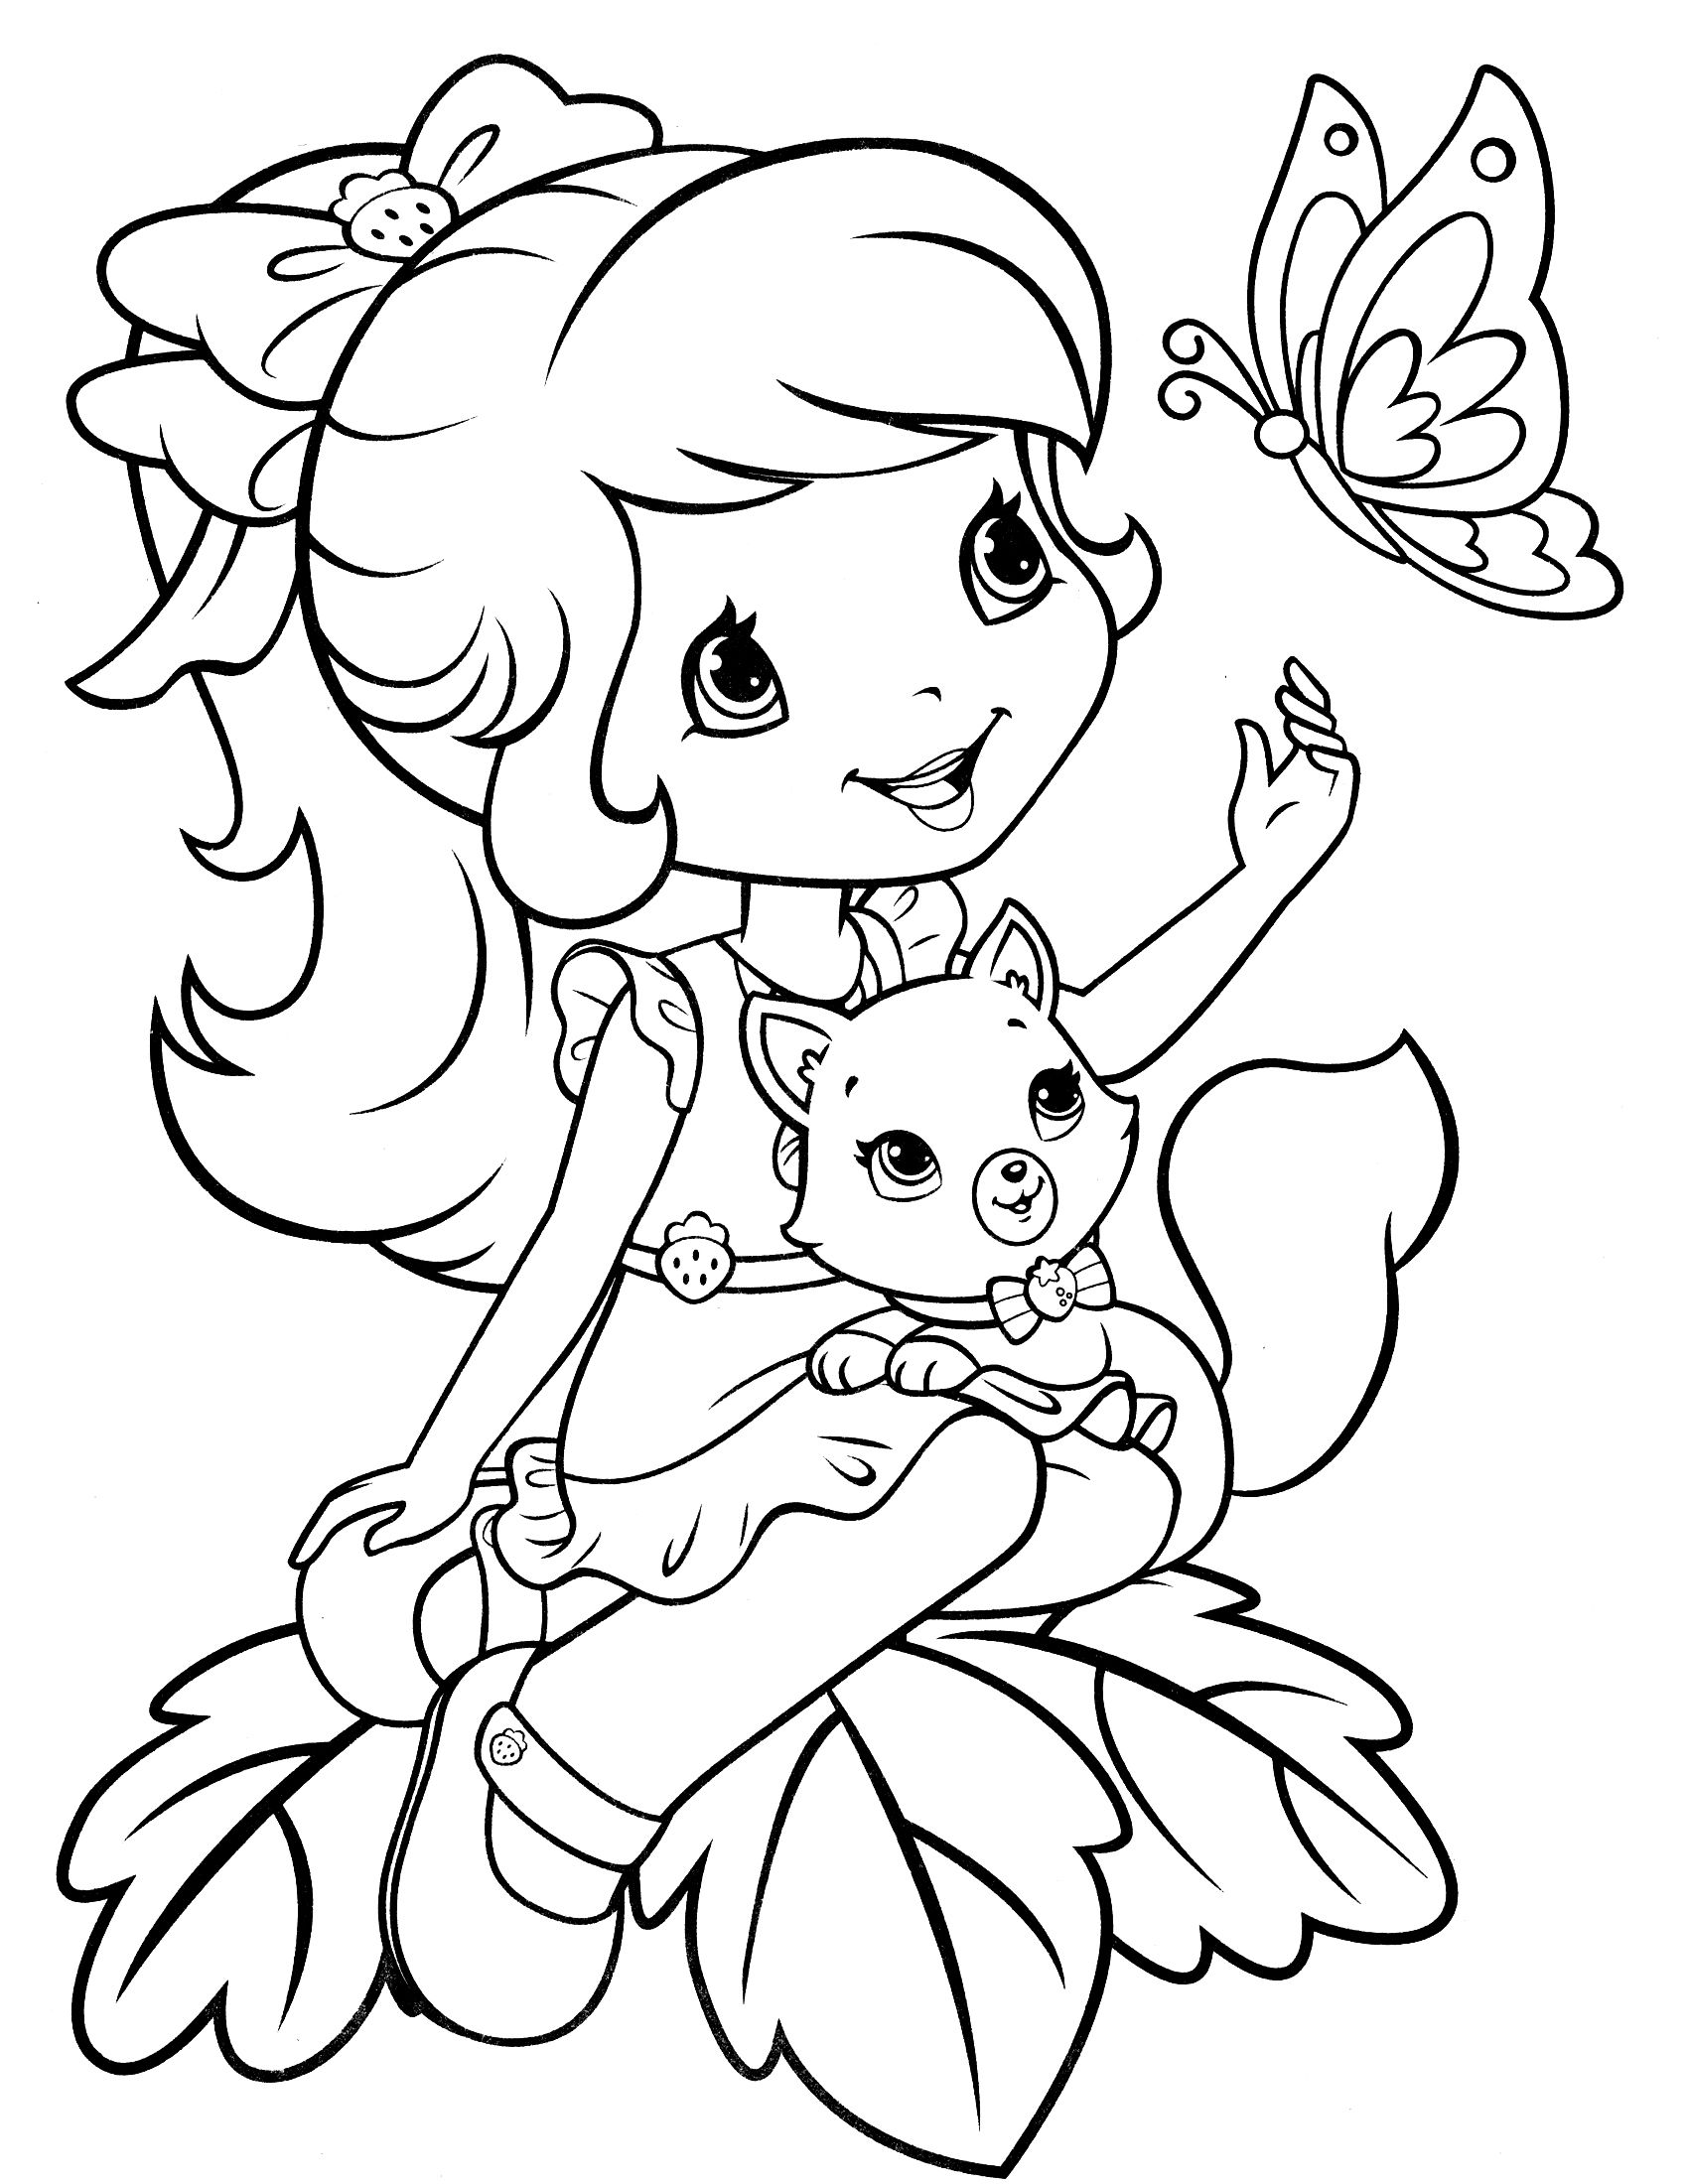 Adult Cute Printable Strawberry Shortcake Coloring Pages Gallery Images cute 1000 images about coloring strawberry shortcake on pinterest pages and bir